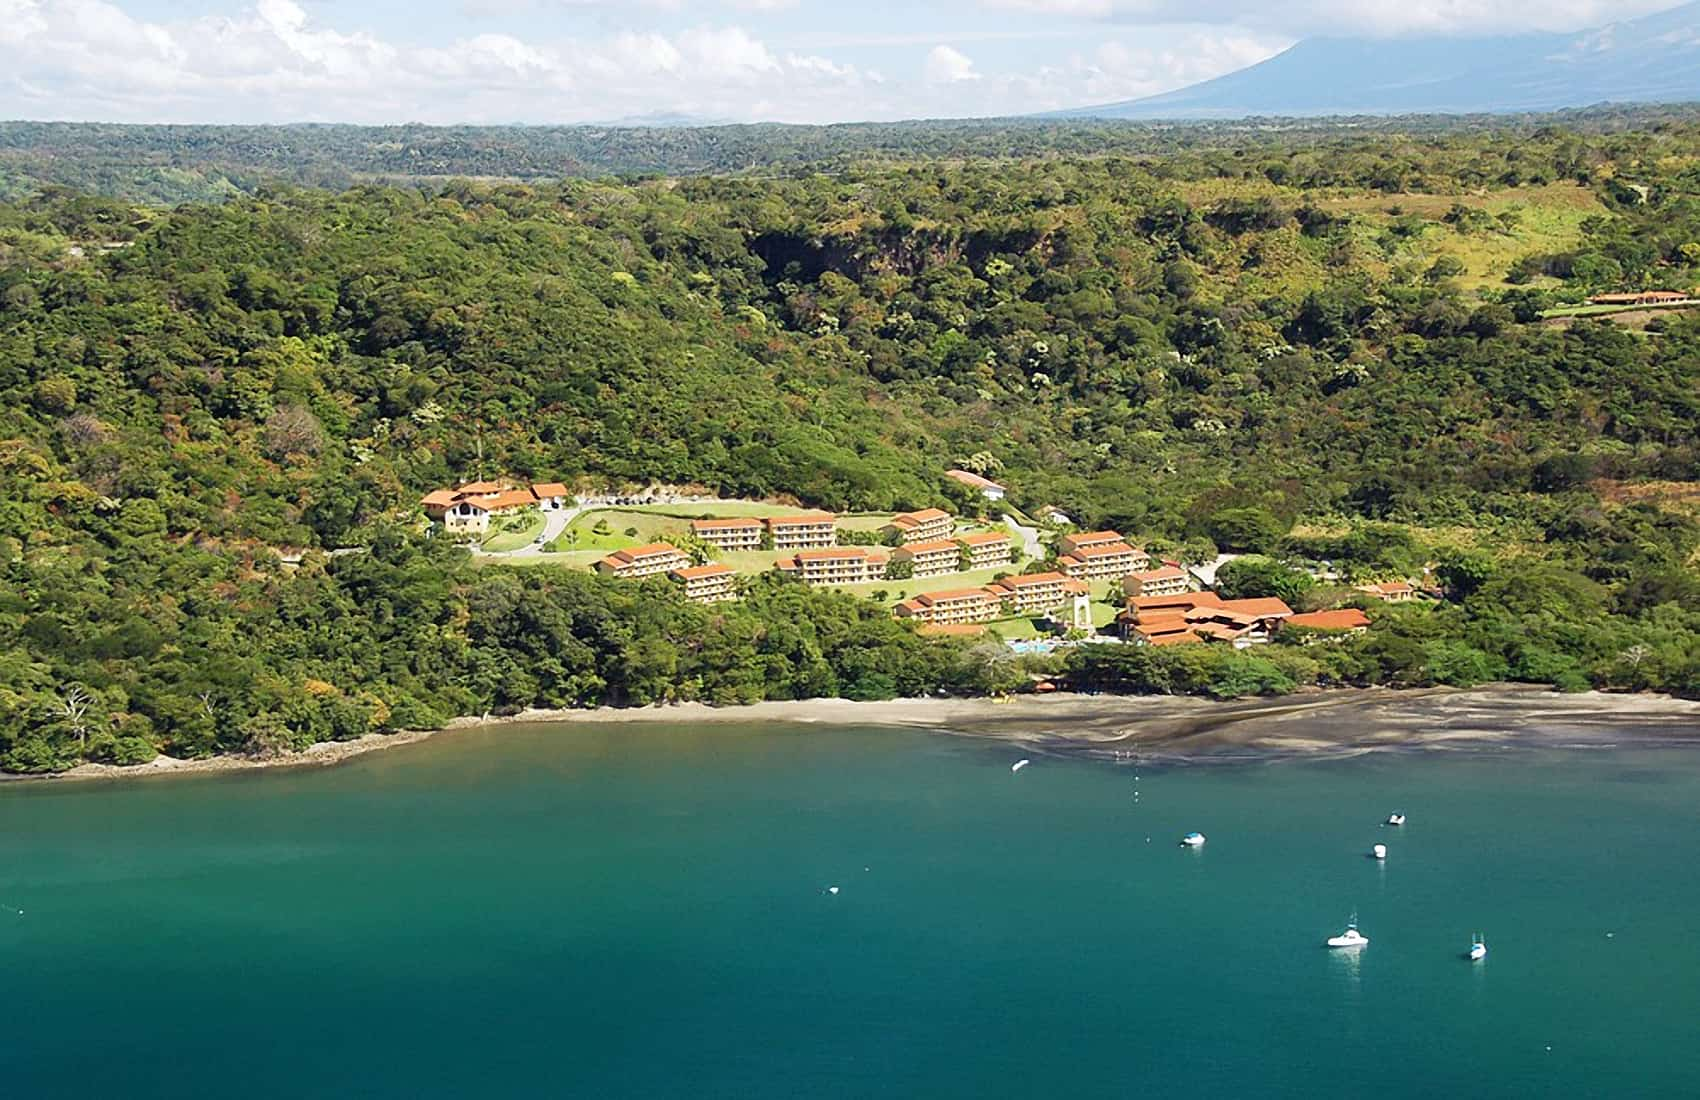 Jobs in Guanacaste's tourism sector